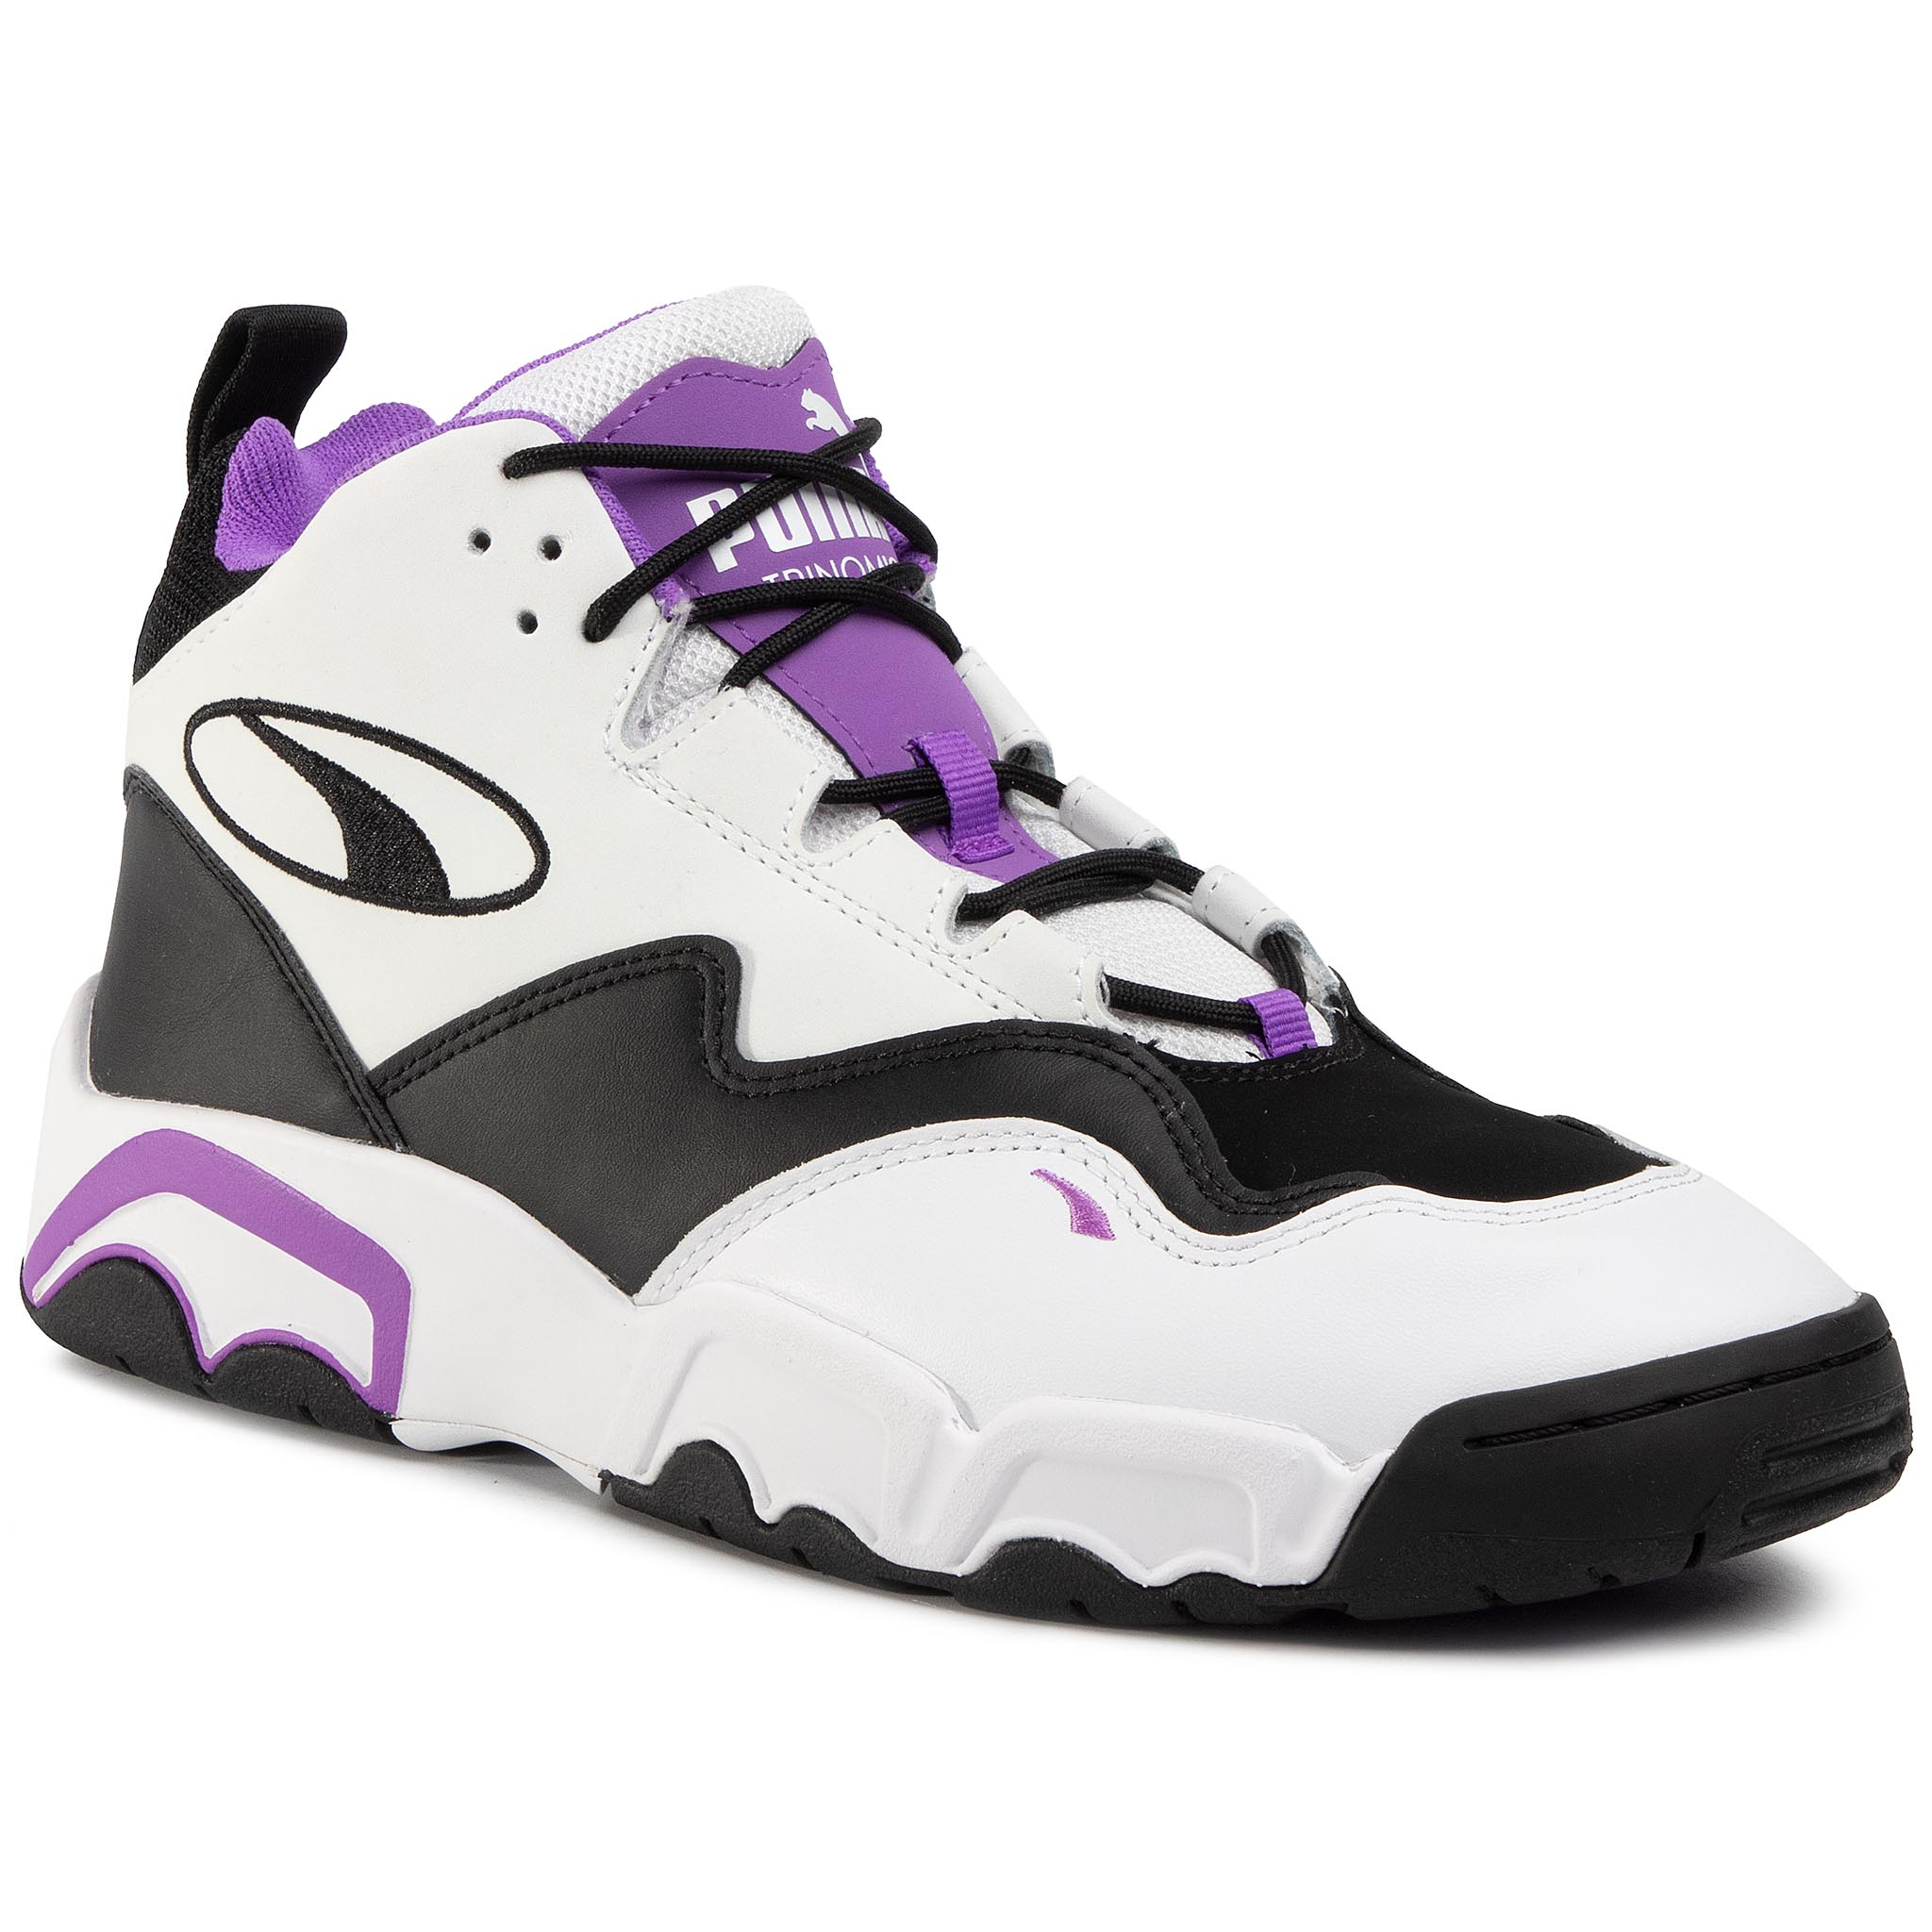 Pantofi Puma - Source Mid 36982906 06 Puma Black/Purple Glr/Whit imagine epantofi.ro 2021